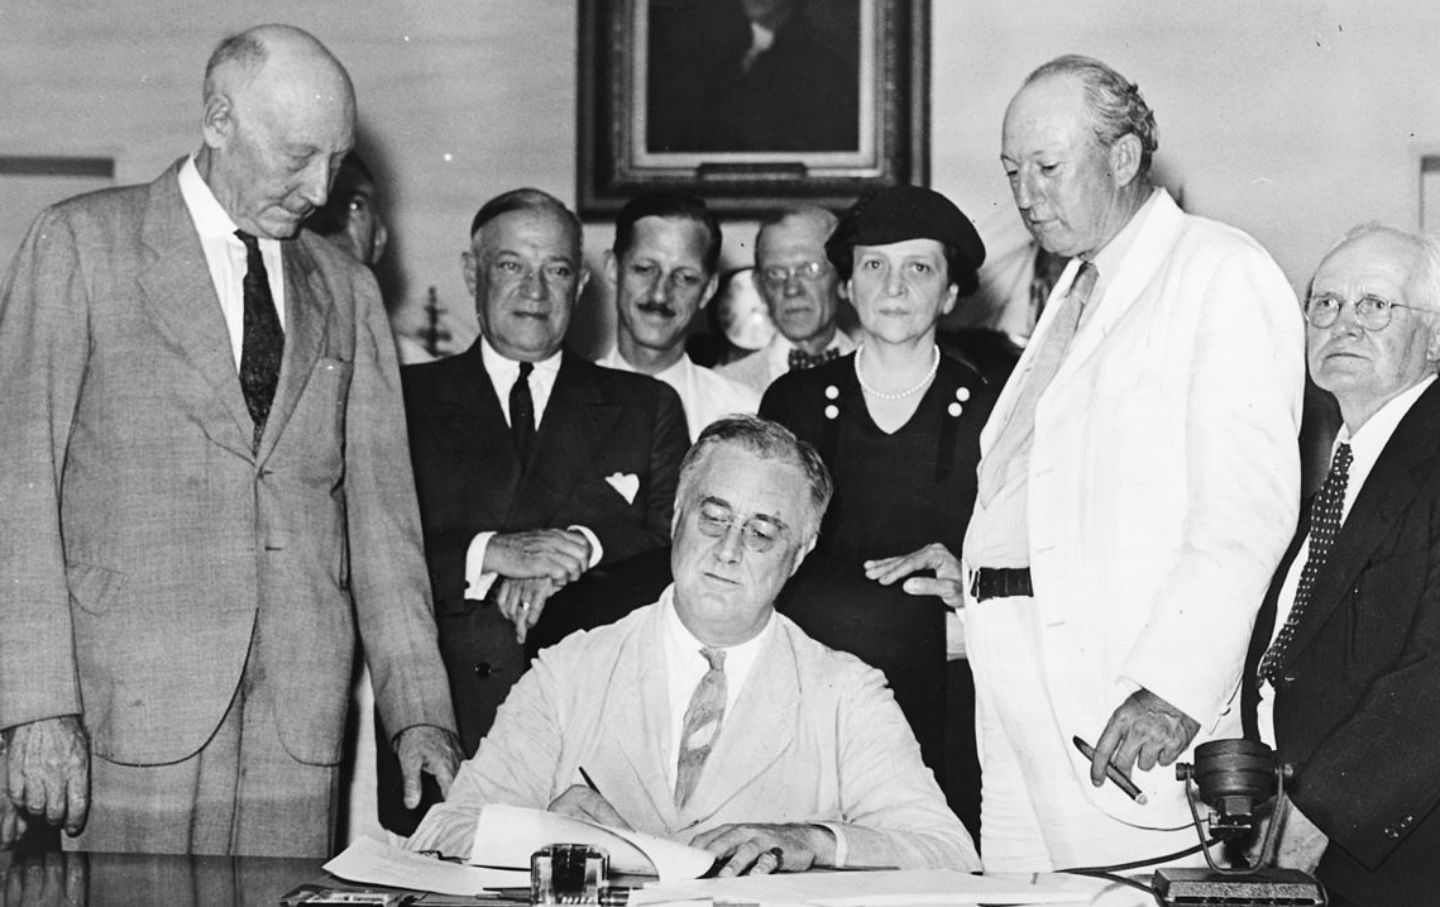 August 14 President Franklin Roosevelt Signs The